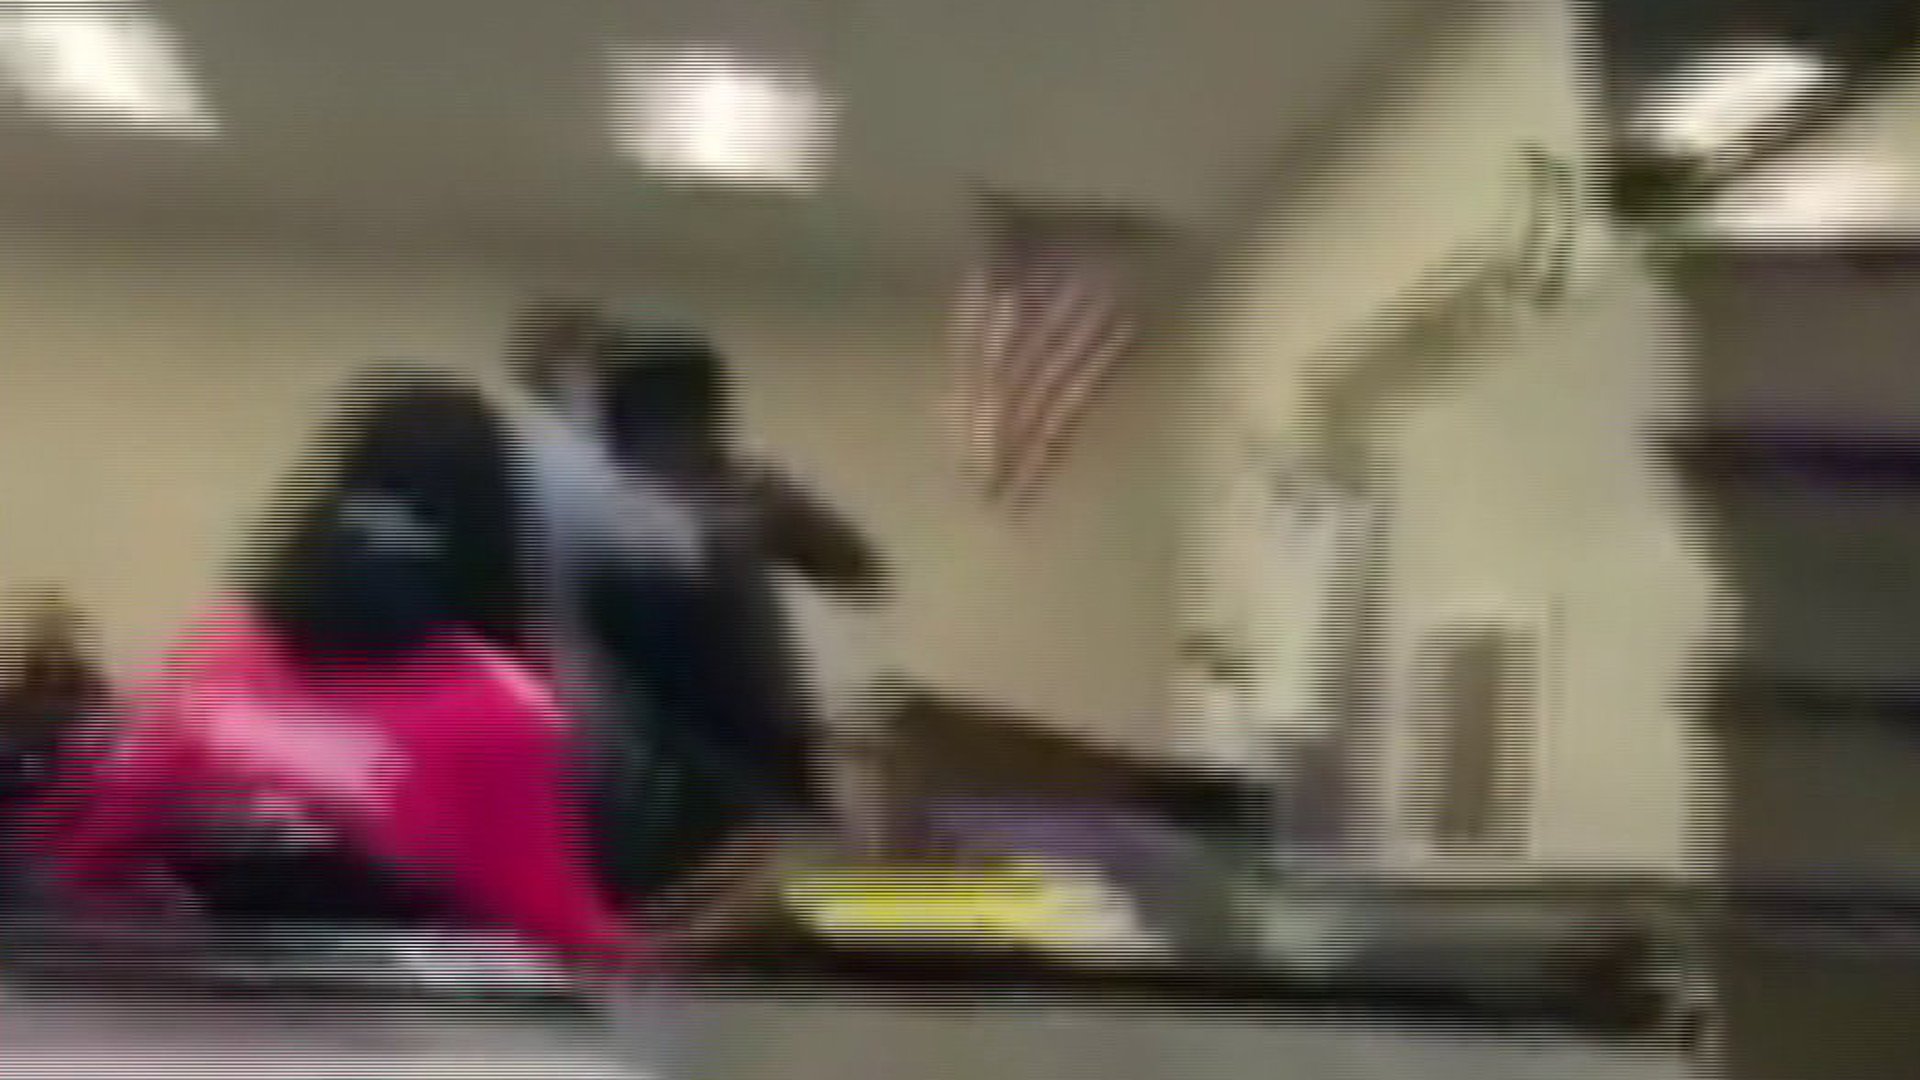 Andres Guardado Video Porno lynwood high school teacher on leave after video captures